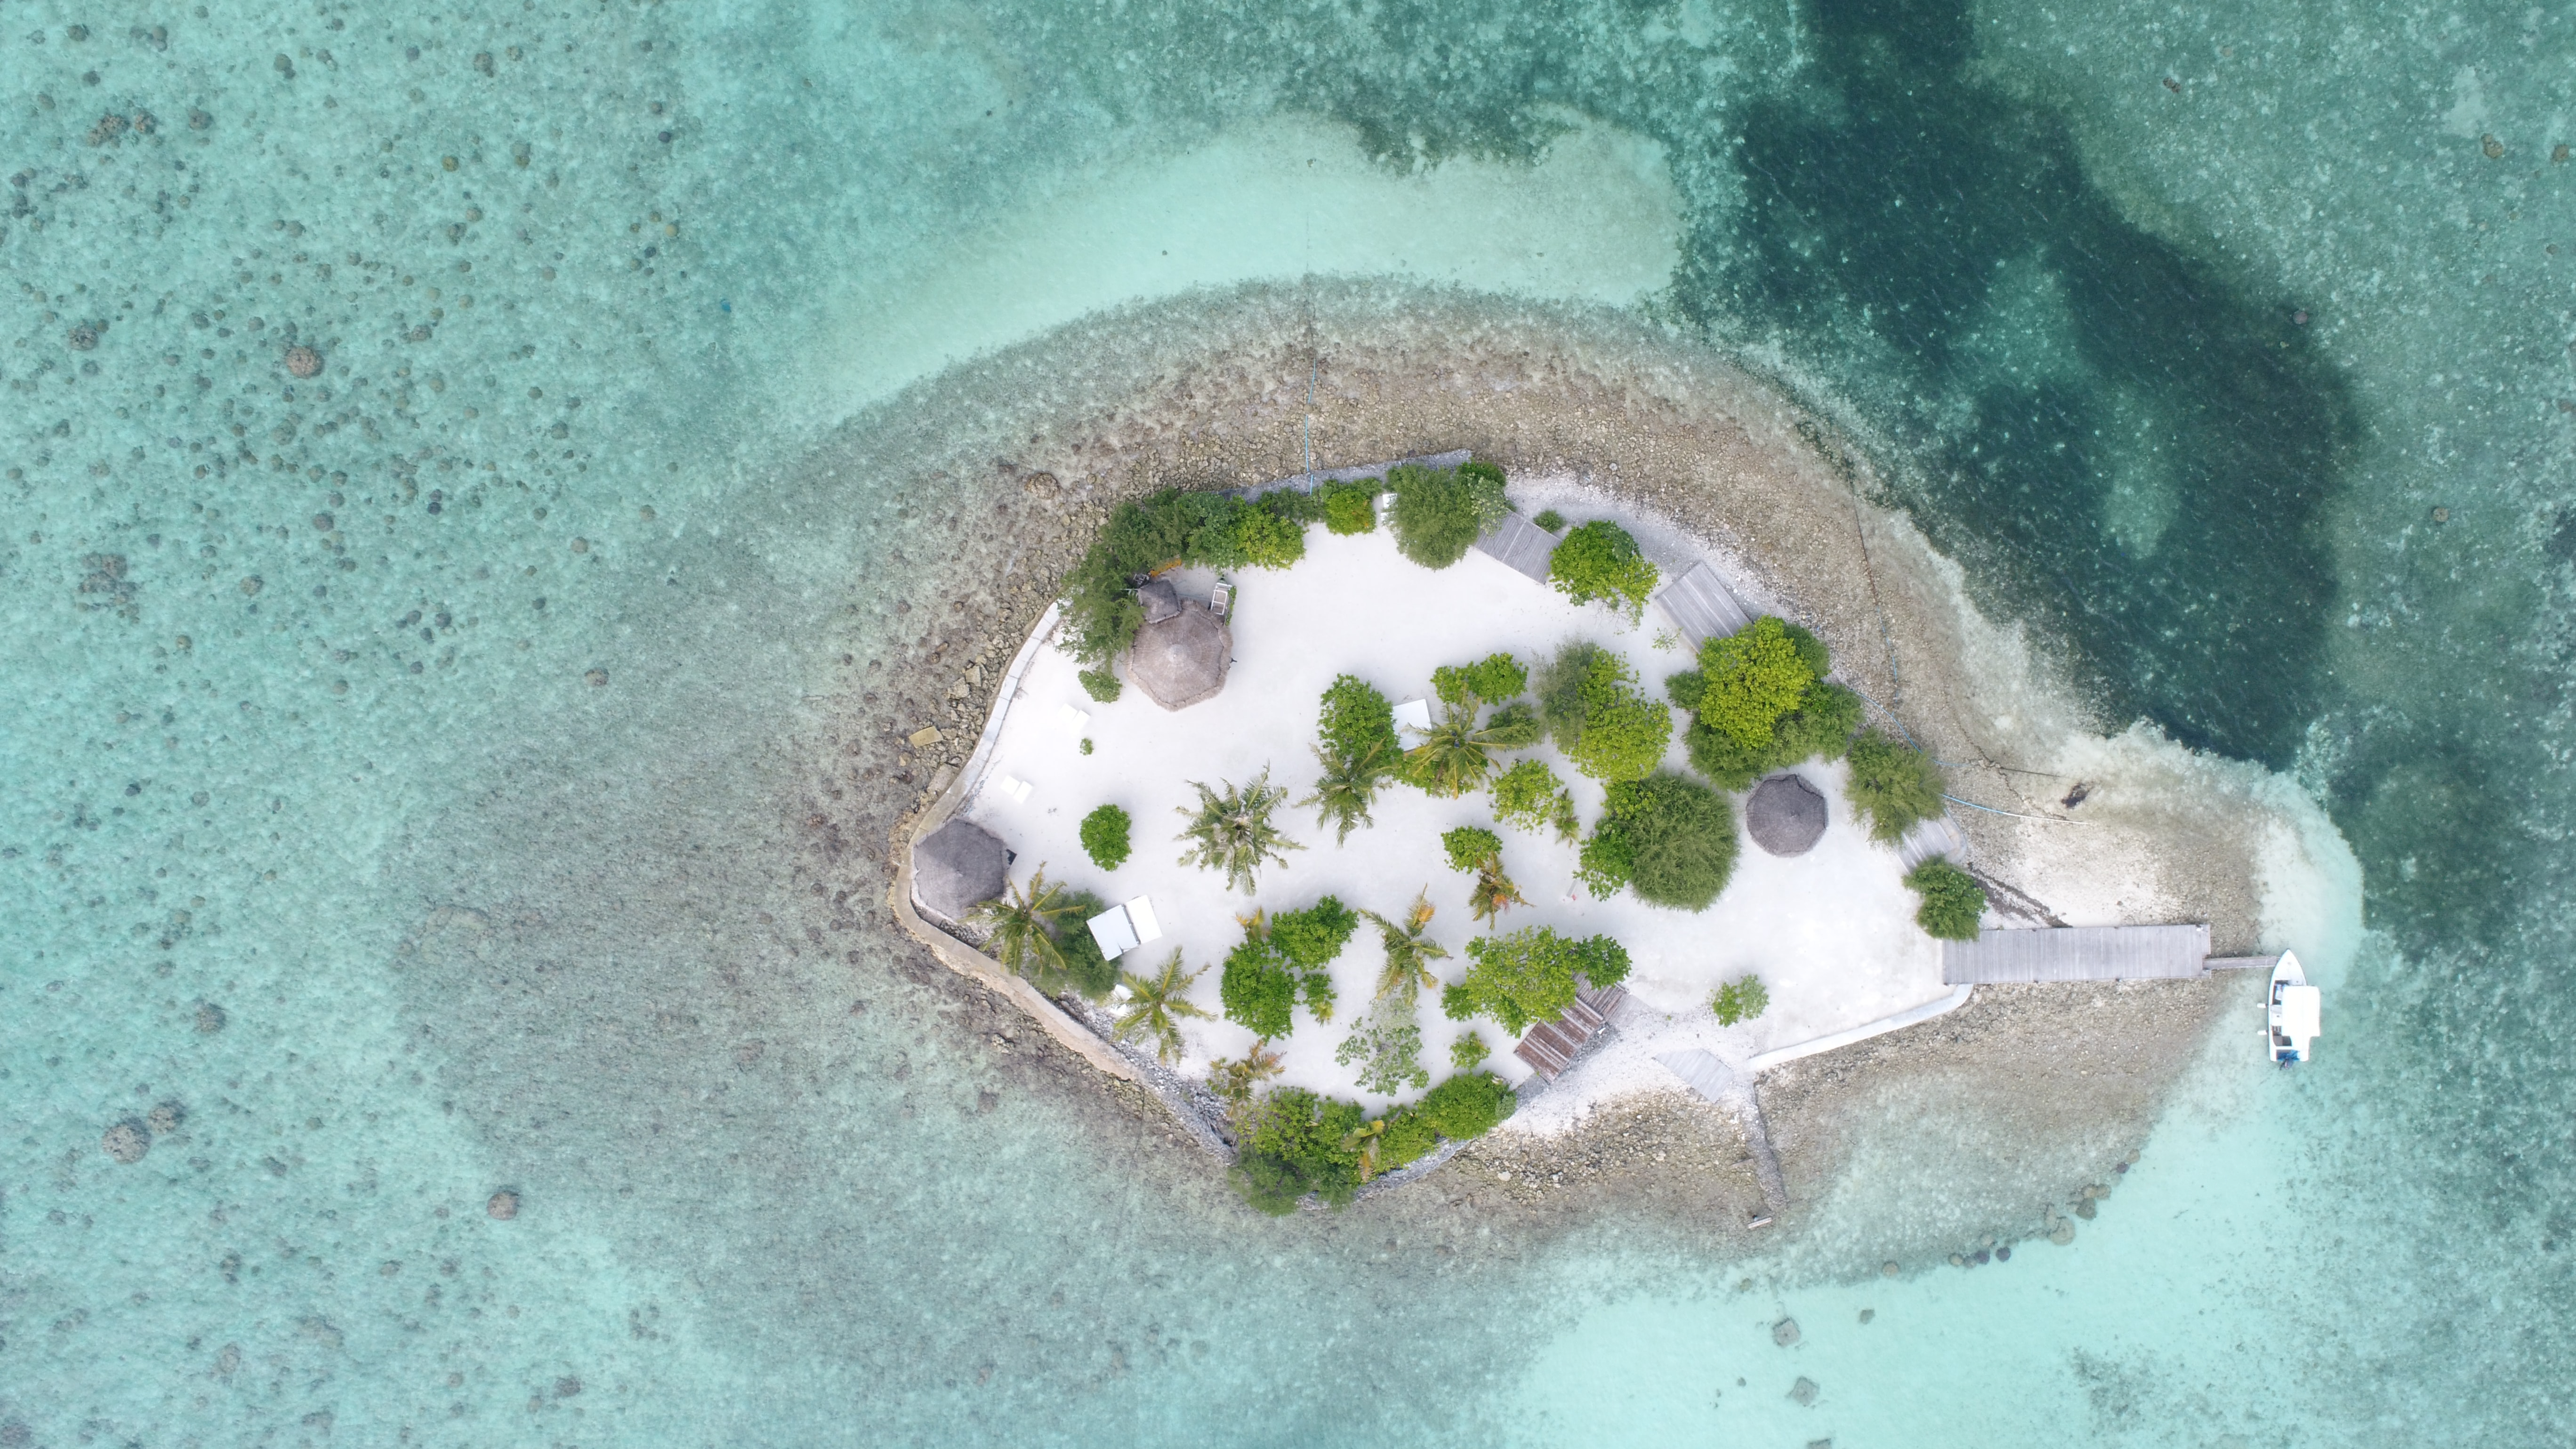 aerial view of islet with trees